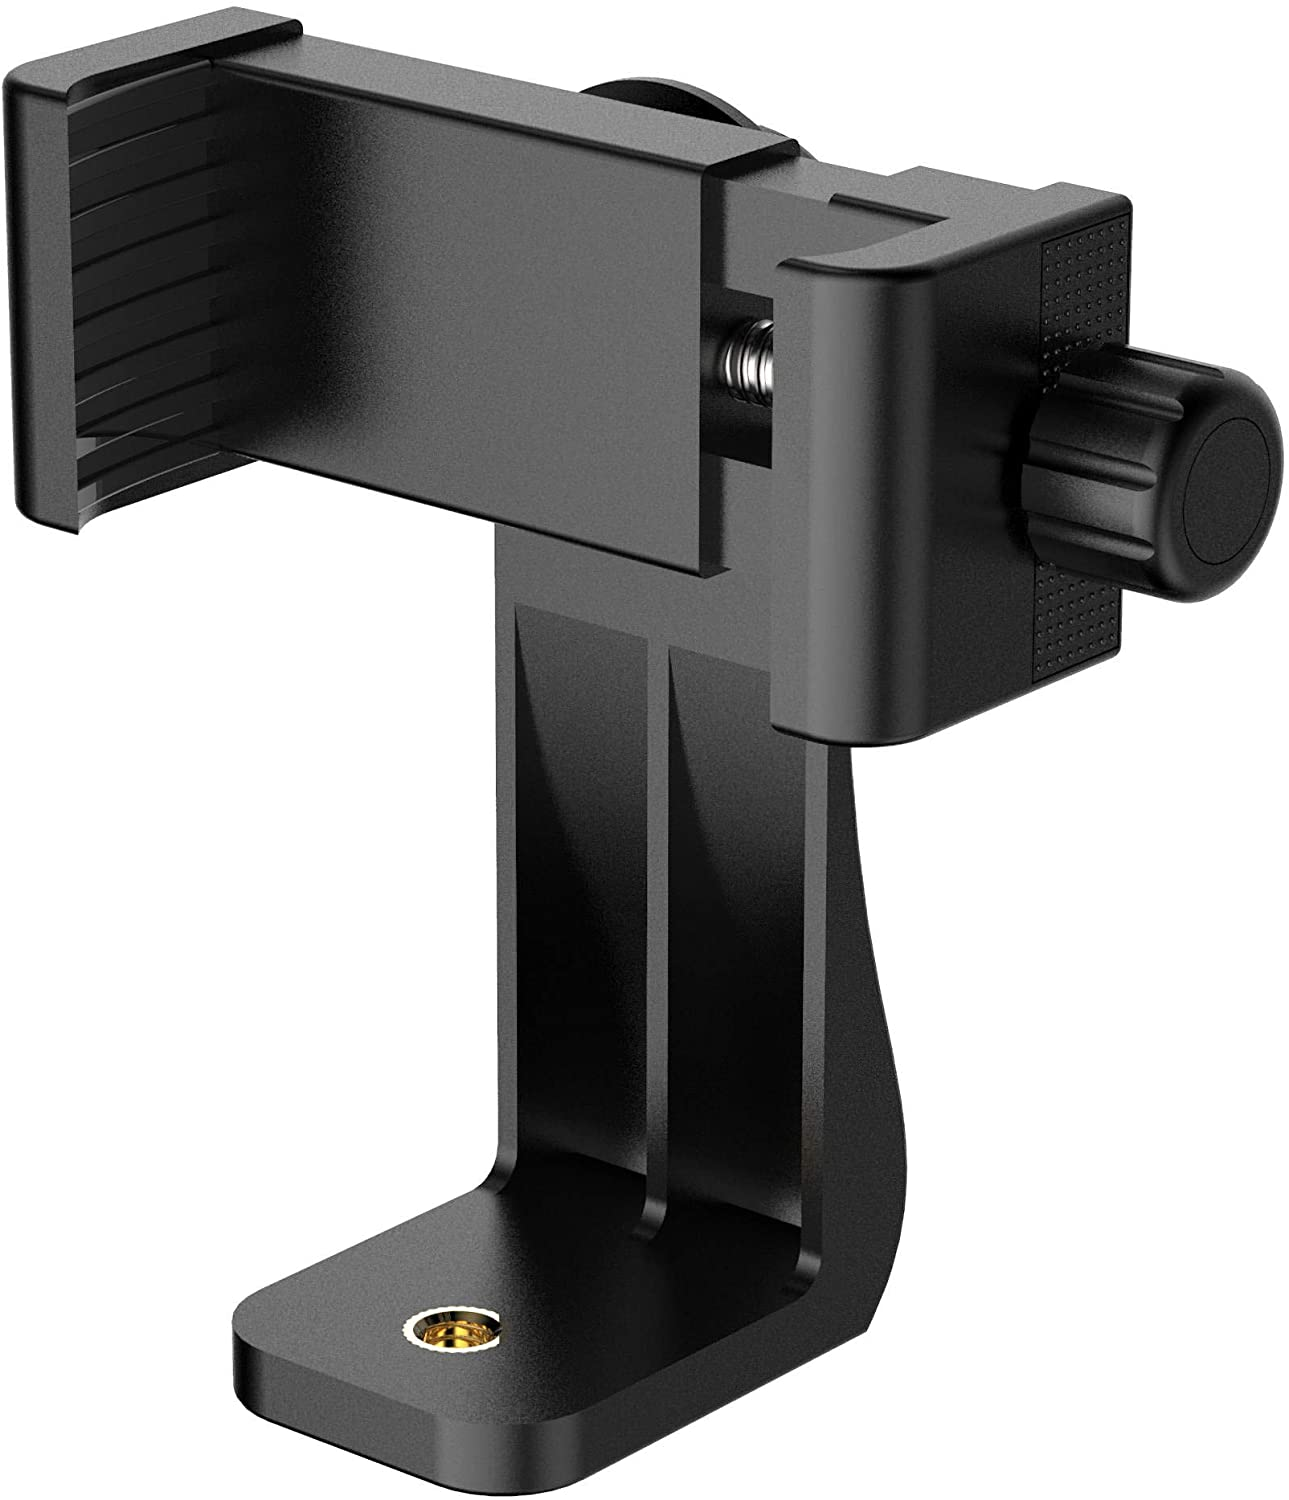 Puroma Universal Cell Phone Tripod Mount Adapter Smartphone Holder Mount Clip for iPhone 8 8plus X, 7 7plus 6 6s 6plus 5 5s, Samsung, Huawei P9 honor 8 and more Phones, Selfie Monopod Adjustable Clamp: Electronics